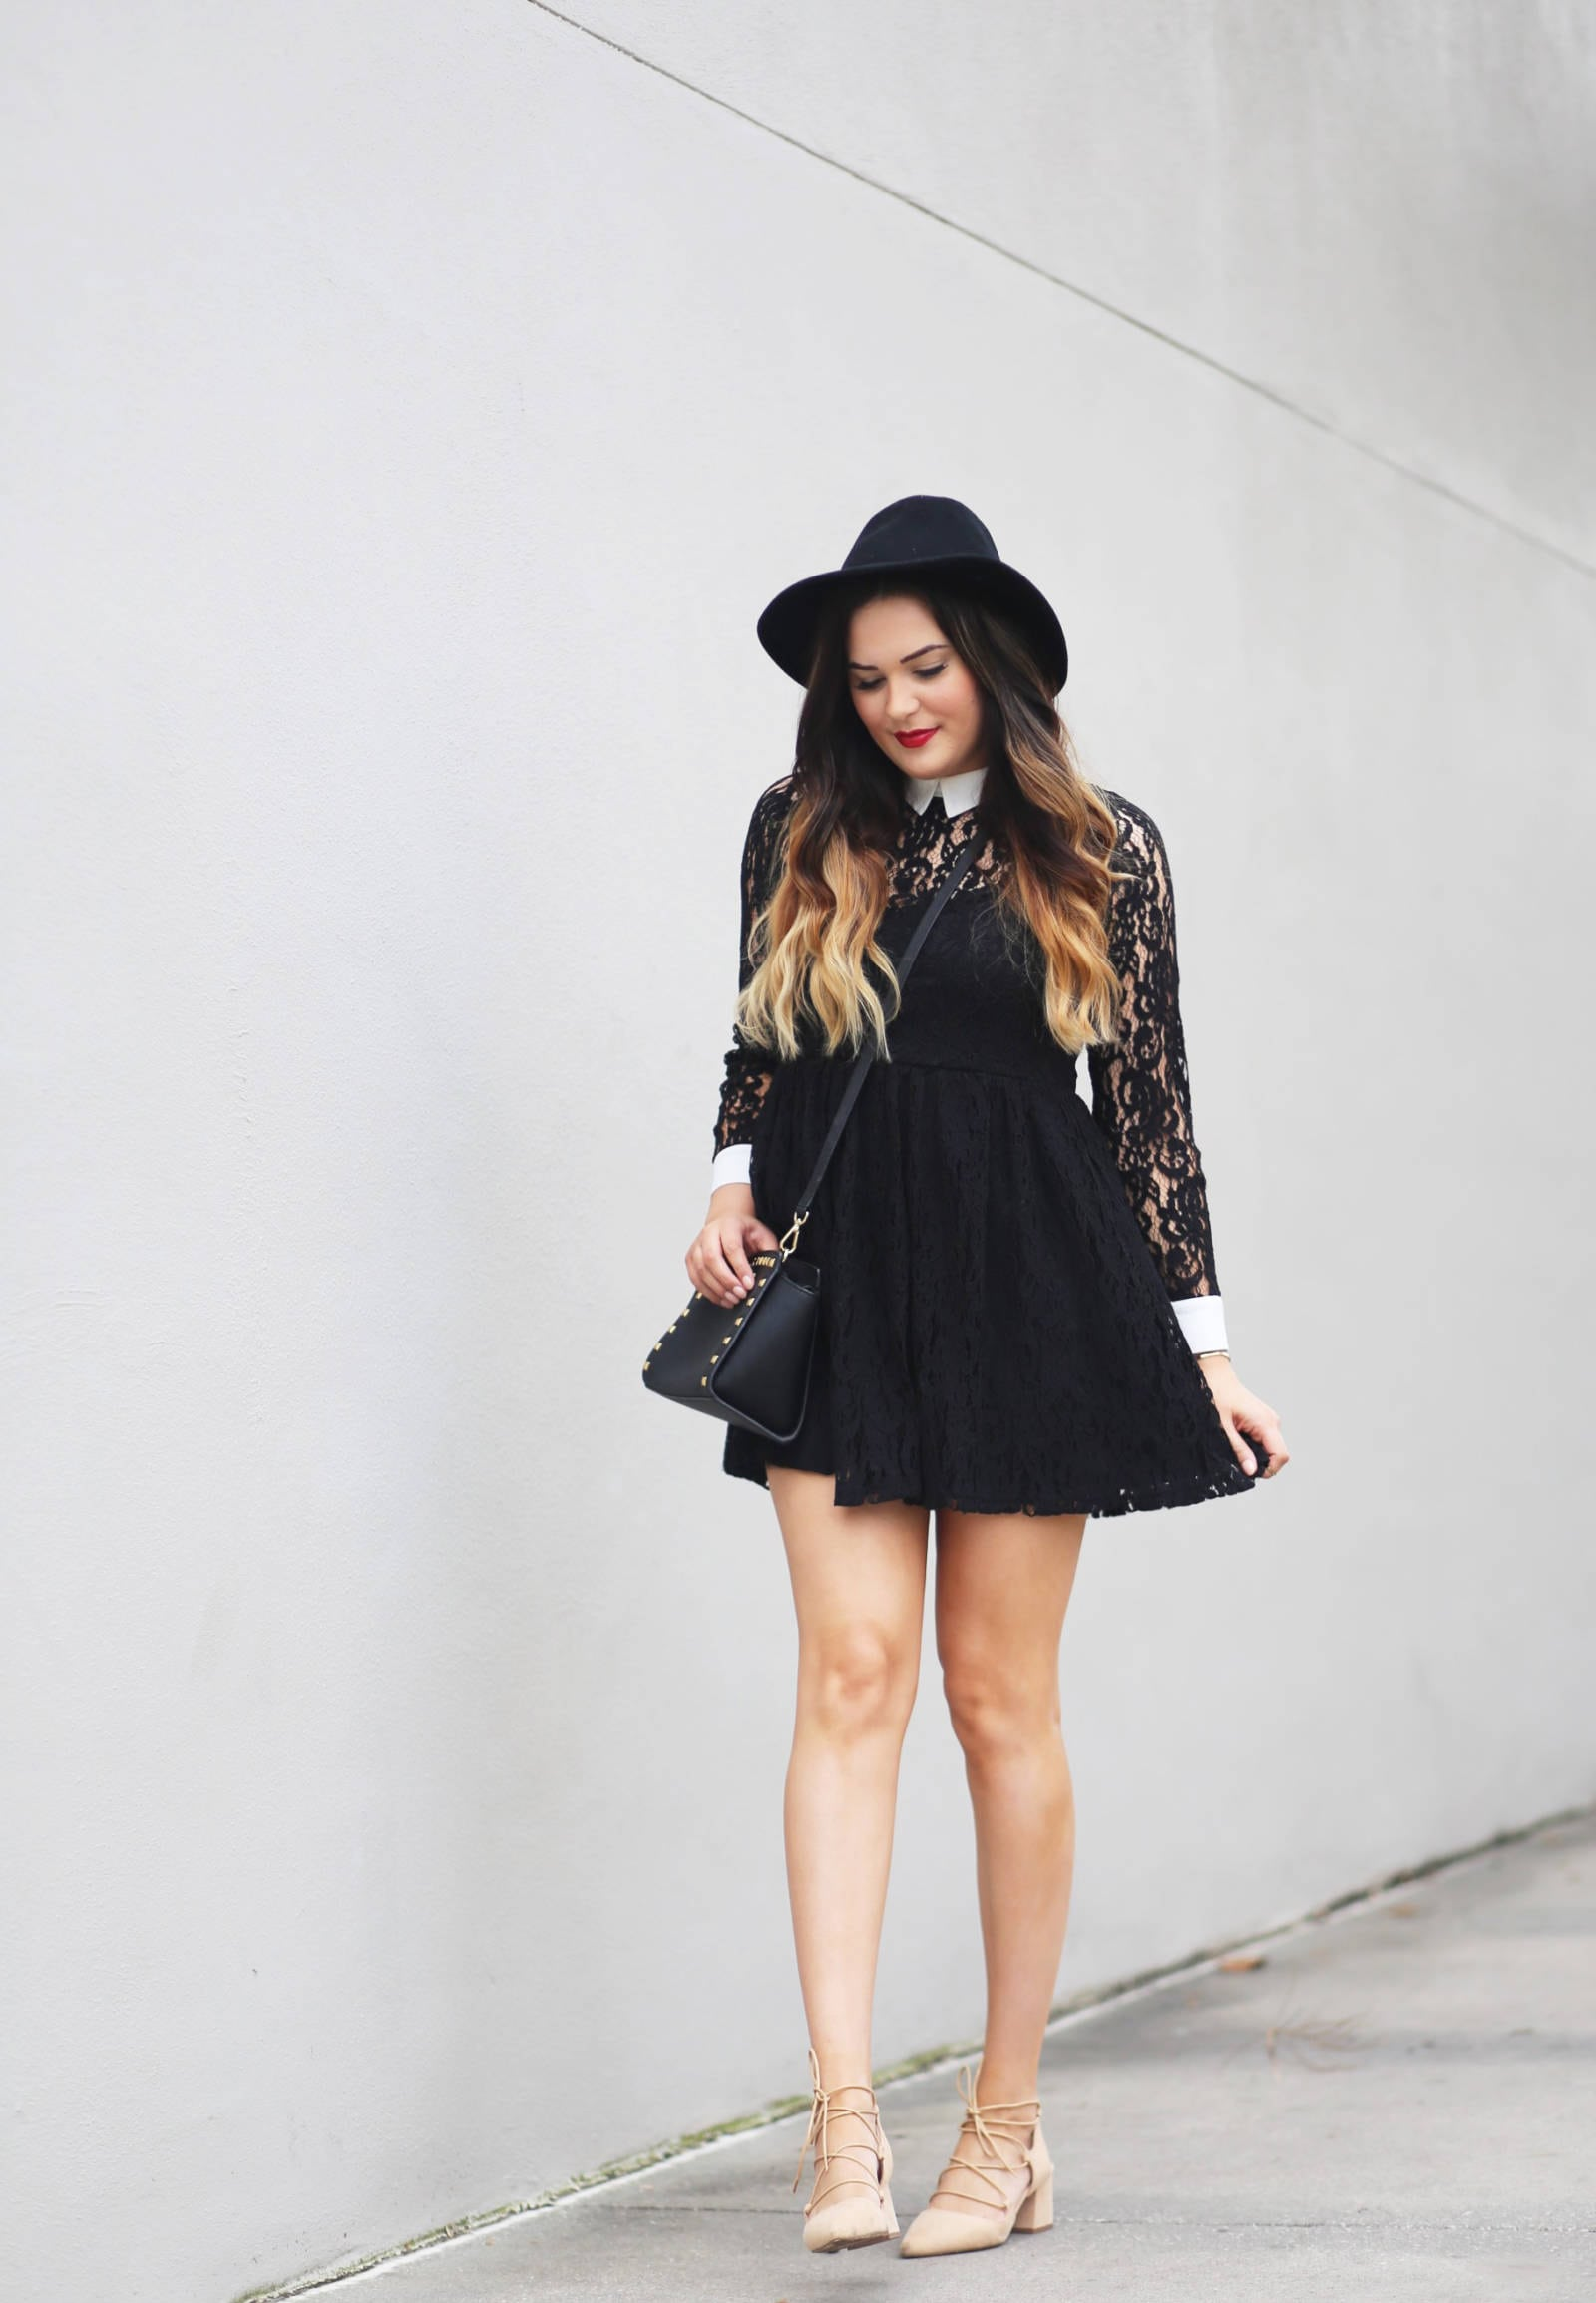 Fashion blogger Michelle Kehoe of Mash Elle shares a Valentine's Day date outfit including a black lace Forever 21 dress!